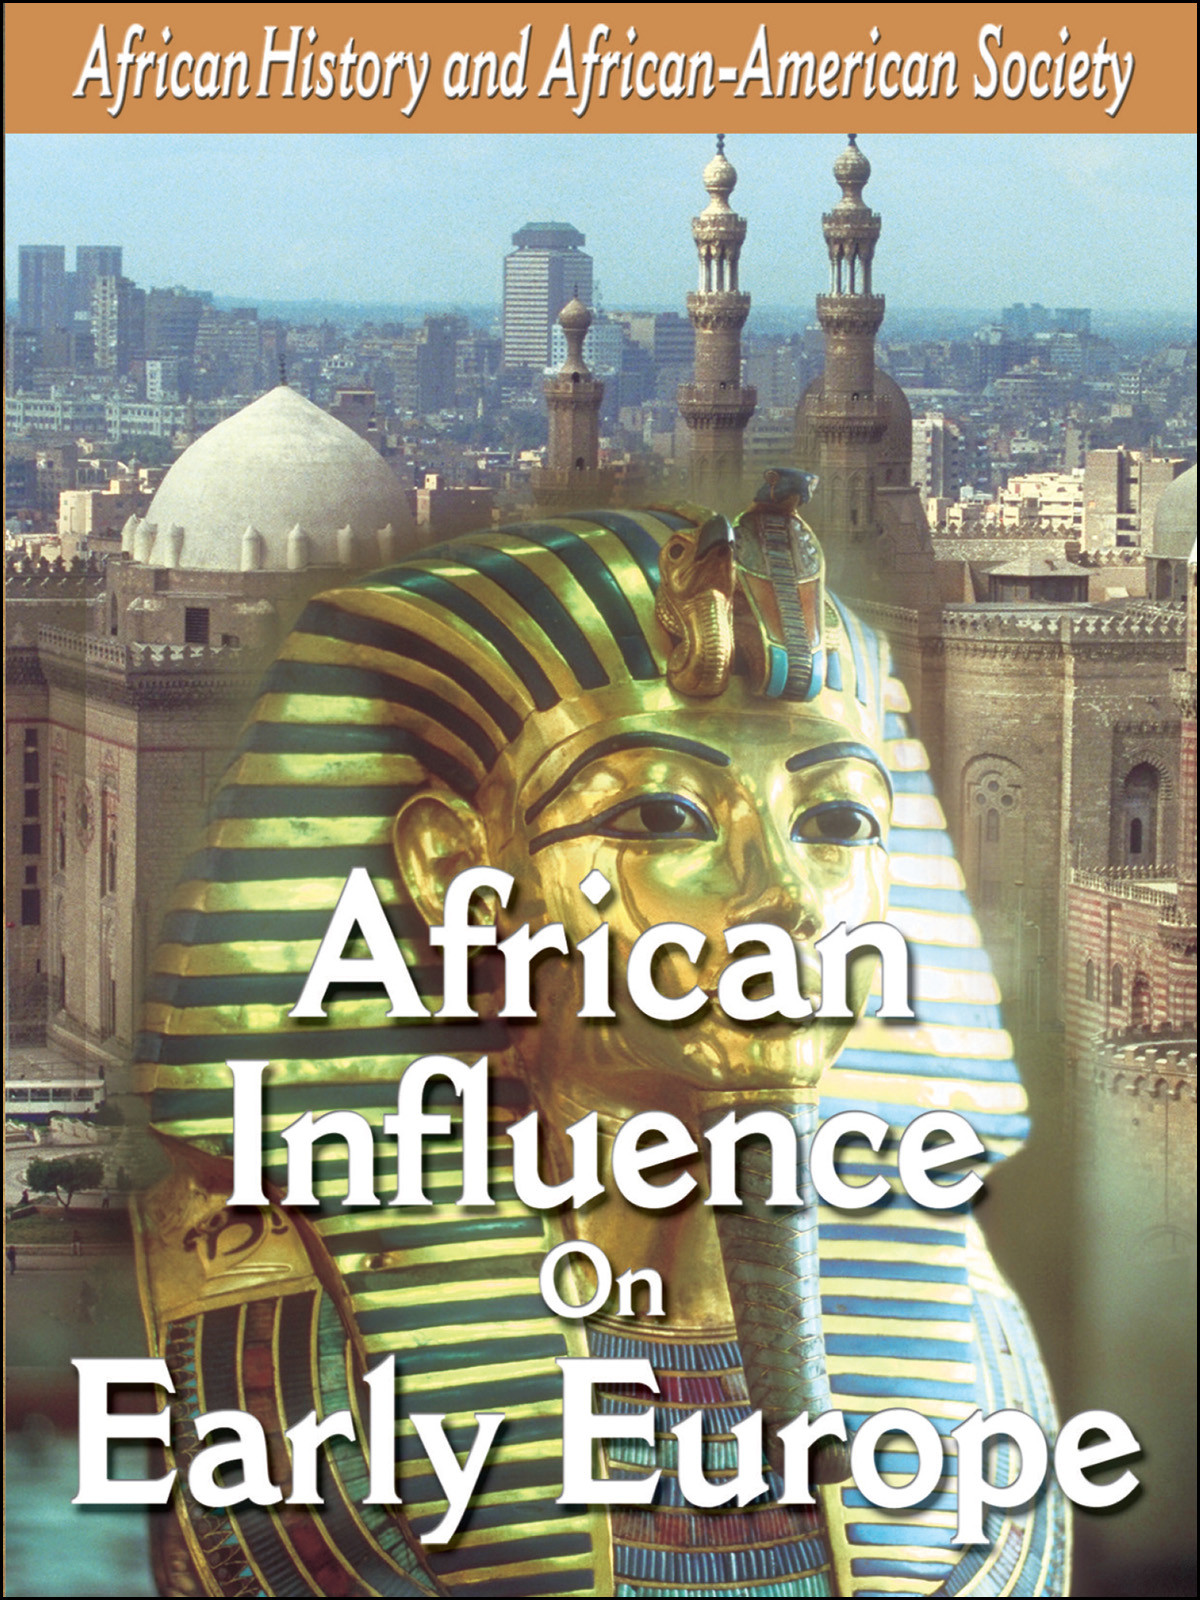 L905 - African-American History African Influences on Early Europe